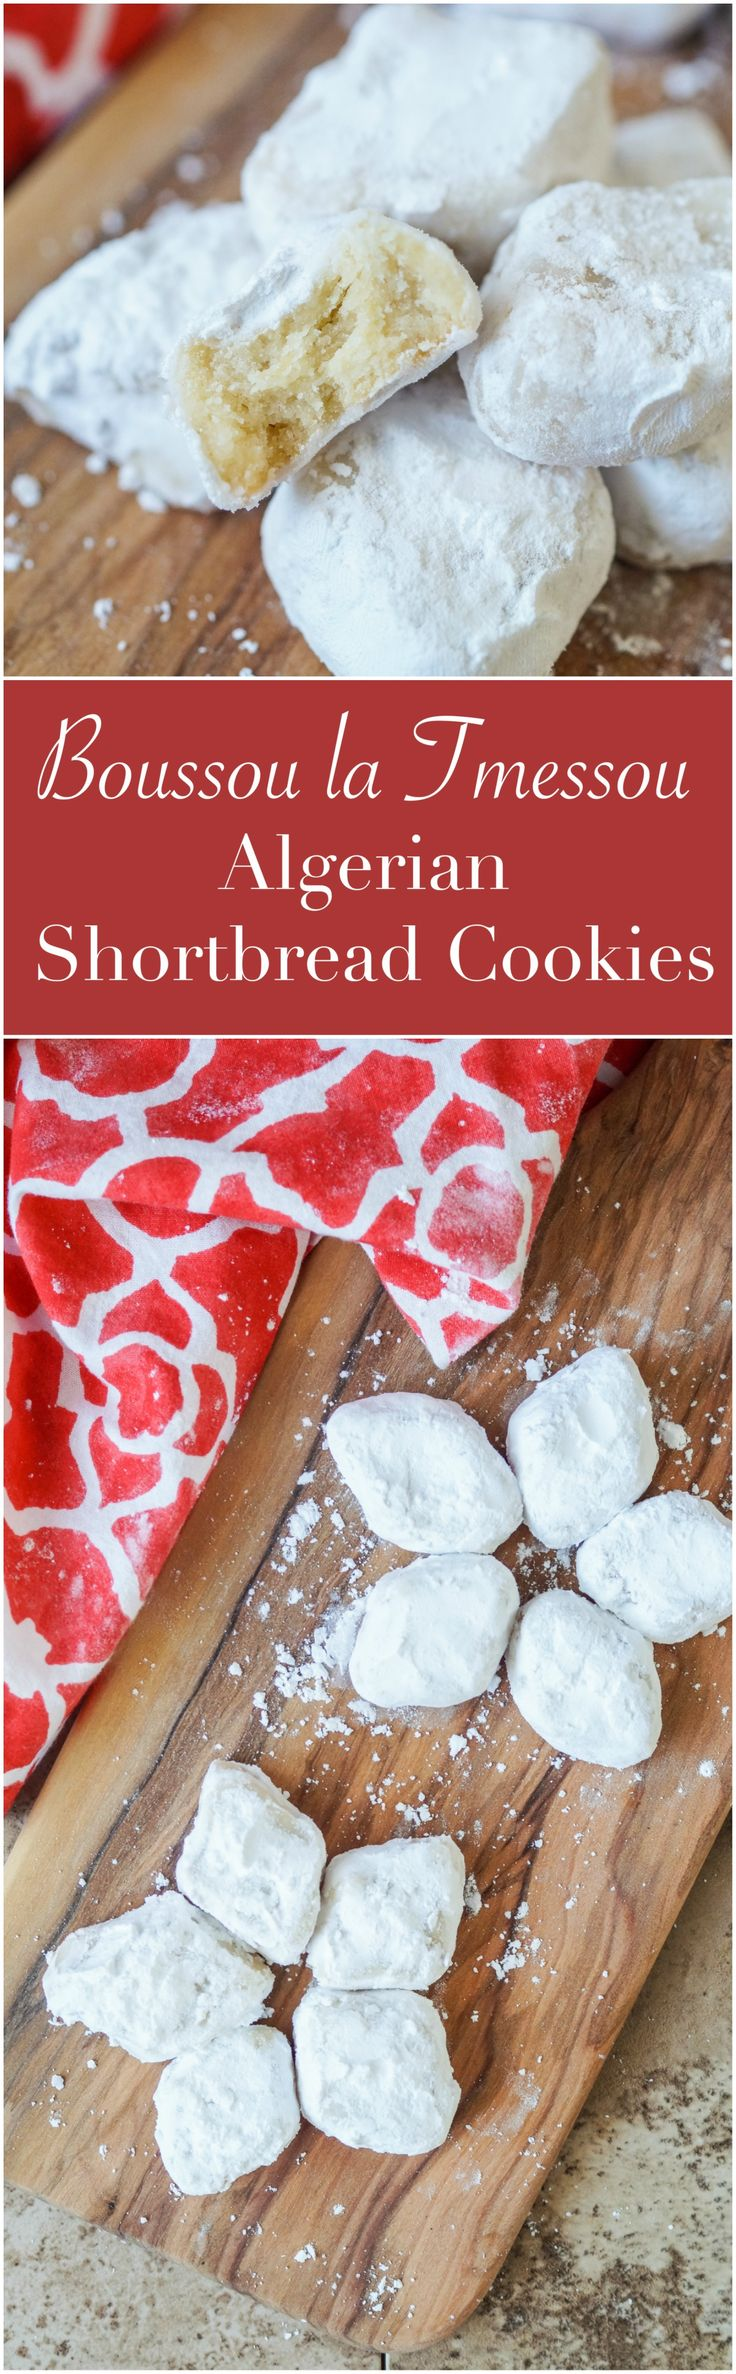 Boussou La Tmessou (بوسو لا تمسو)- Algerian shortbread cookies lightly dipped in orange blossom water and coated in powdered sugar for #InternationalCookies  #boussoulatmessou #Algeria #Algerian #recipe #cookie #dessert #shortbread